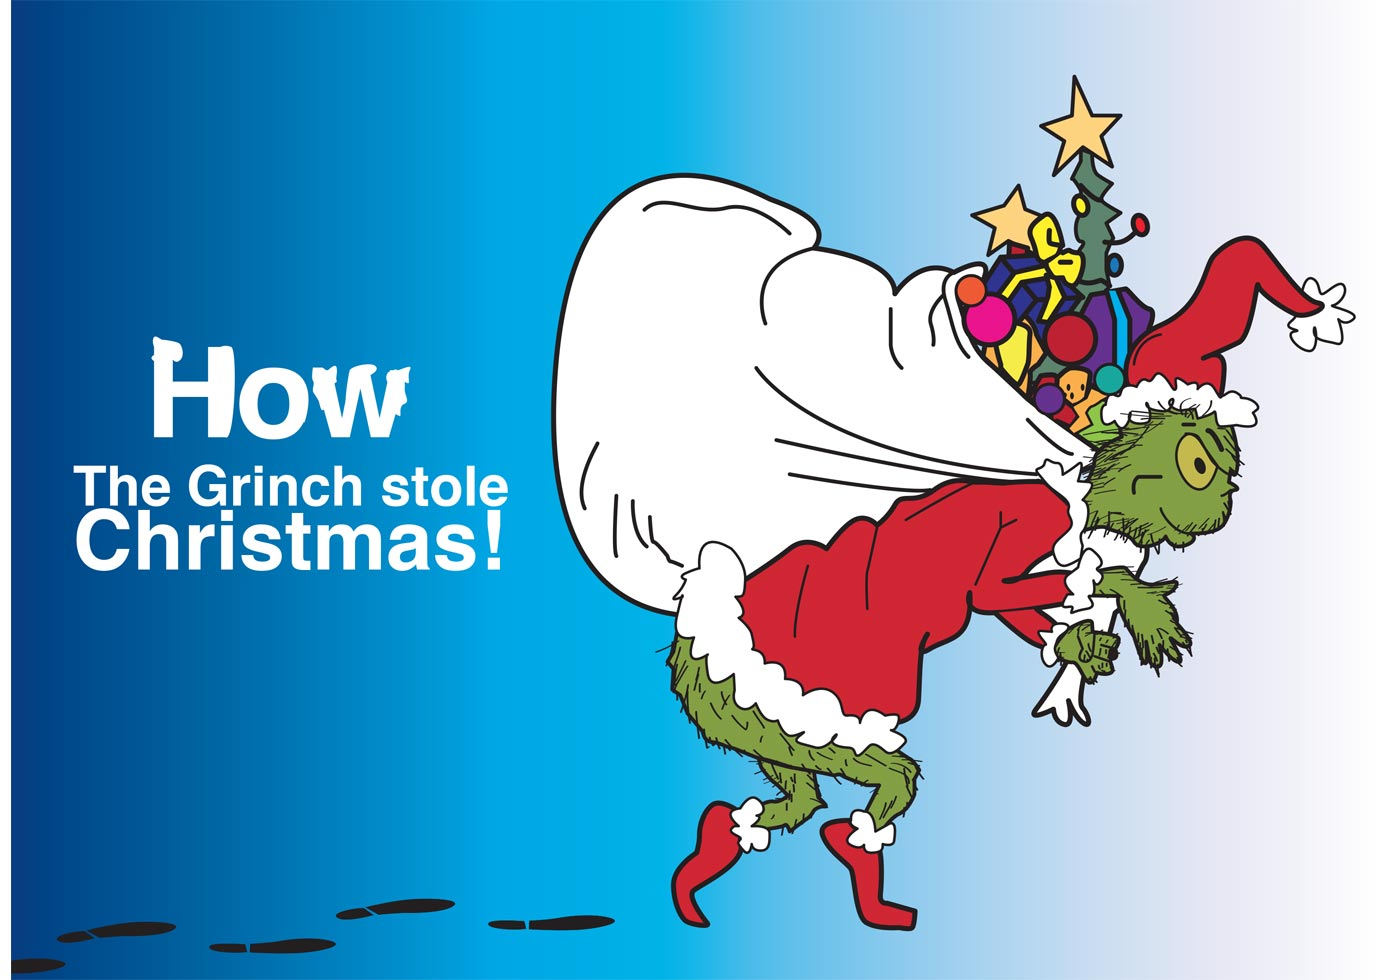 The Grinch Stole Christmas Free Vector Art 5 Free Downloads